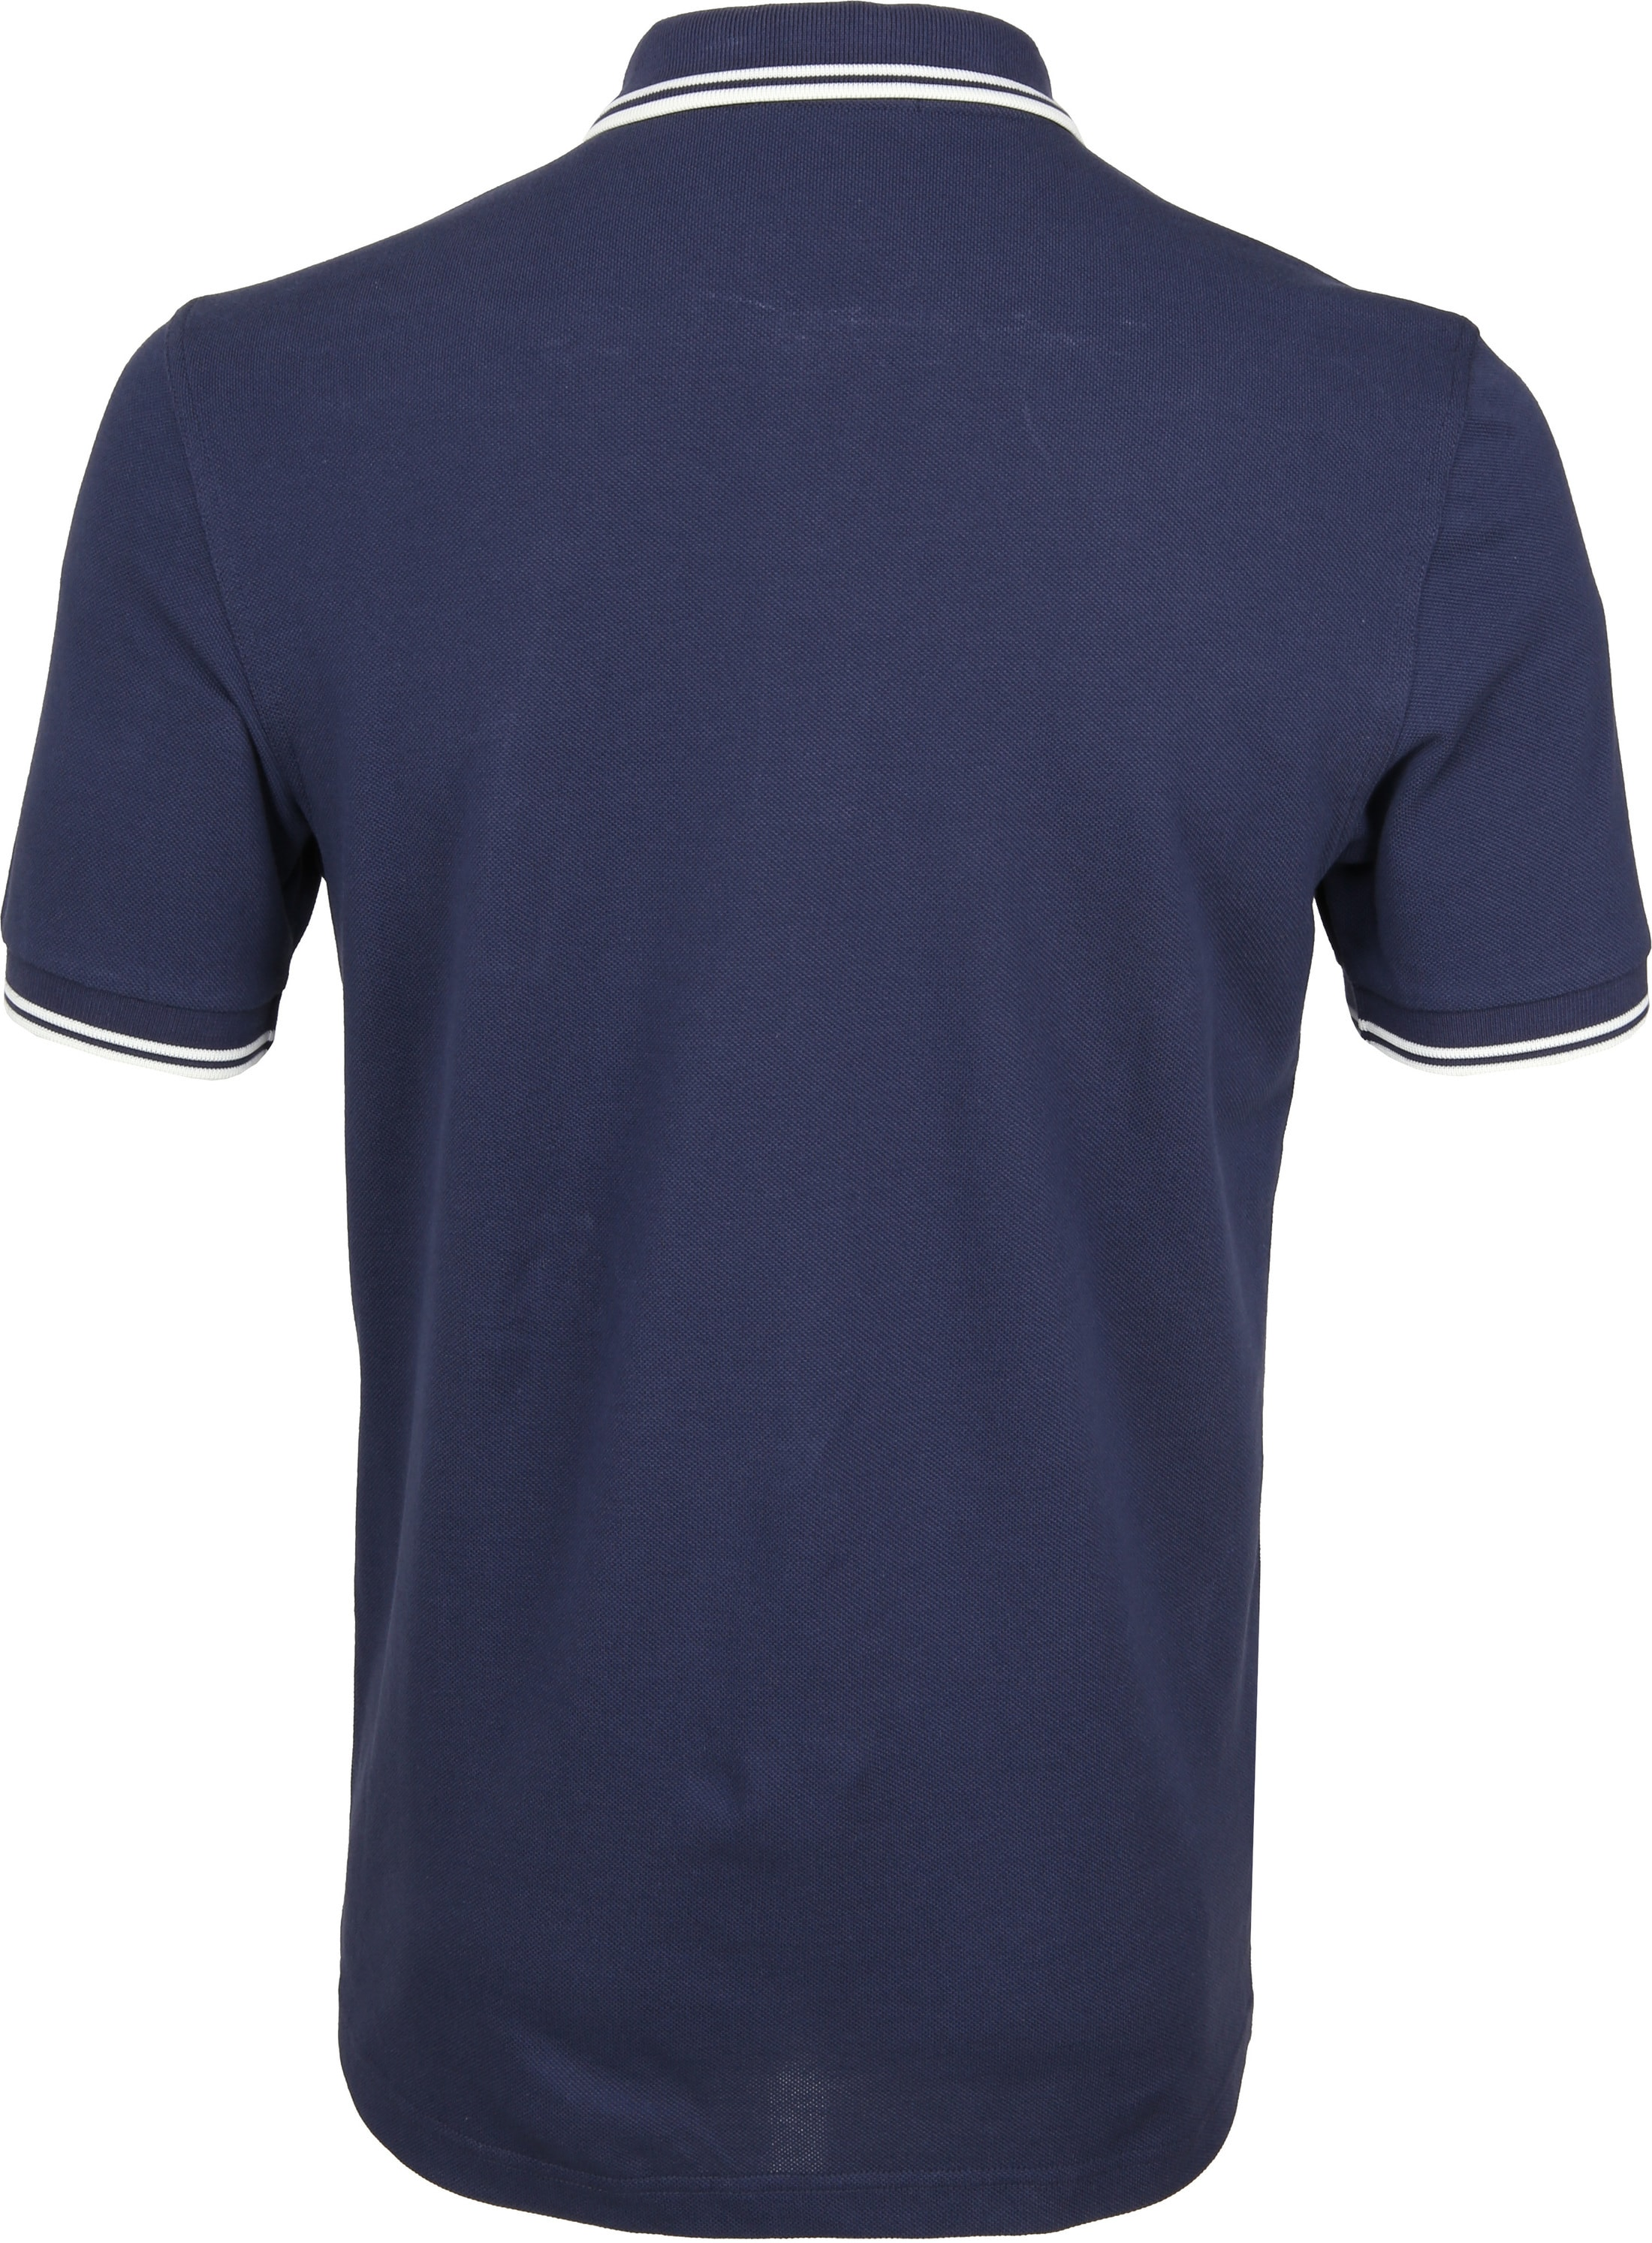 Fred Perry Poloshirt Navy H39 foto 2